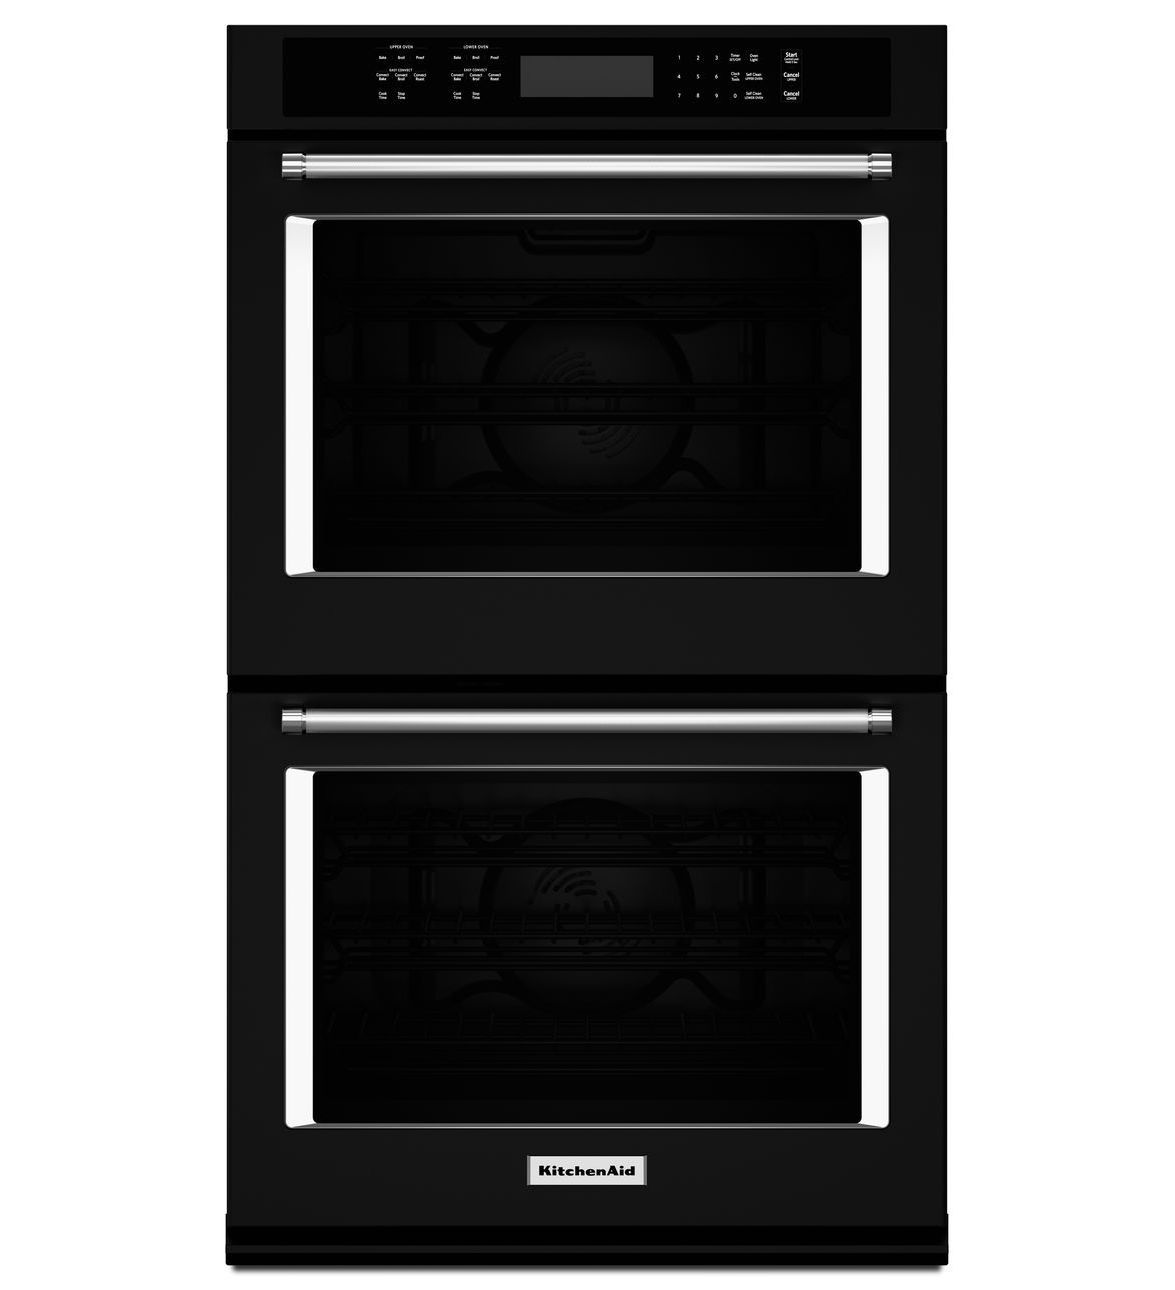 Black 30 double wall oven with evenheat true convection